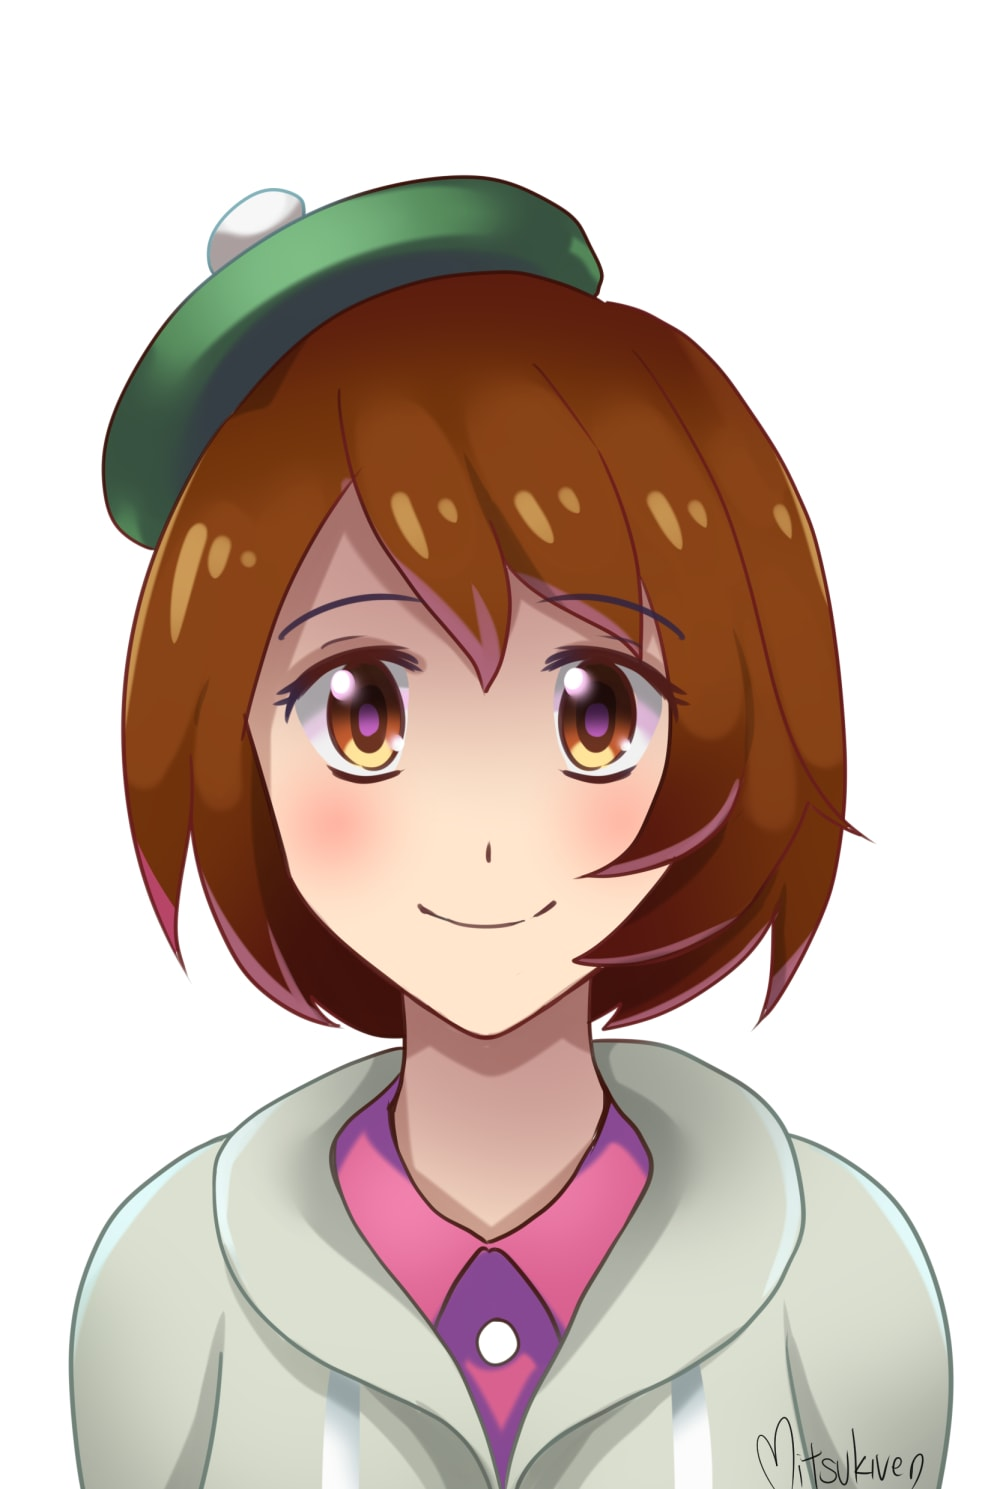 Draw Anime Art With Simple Shading And Line Art By Sapphireying